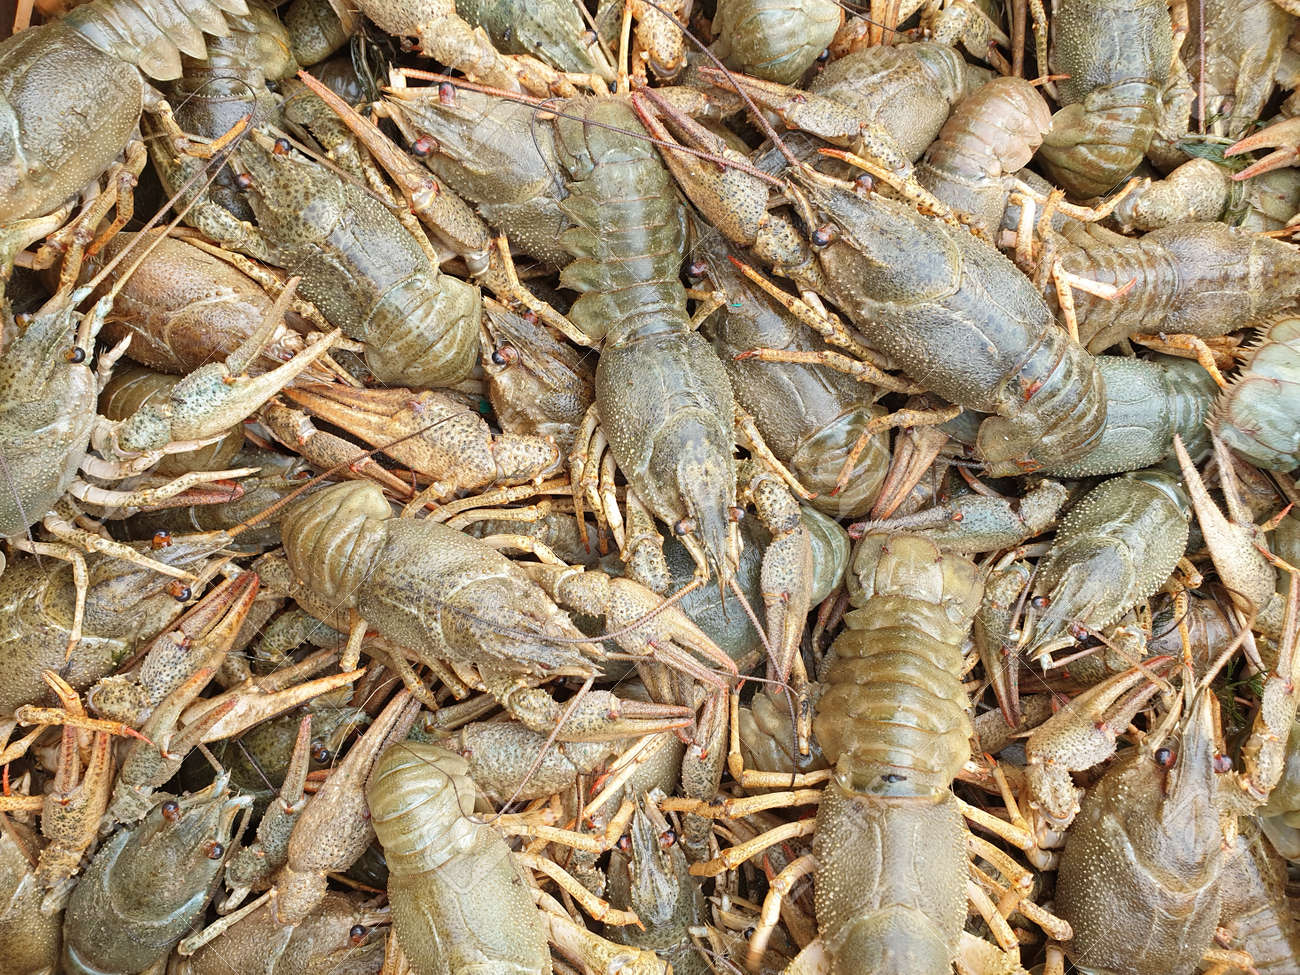 many live crawfish close-up, blank or texture - 157283258